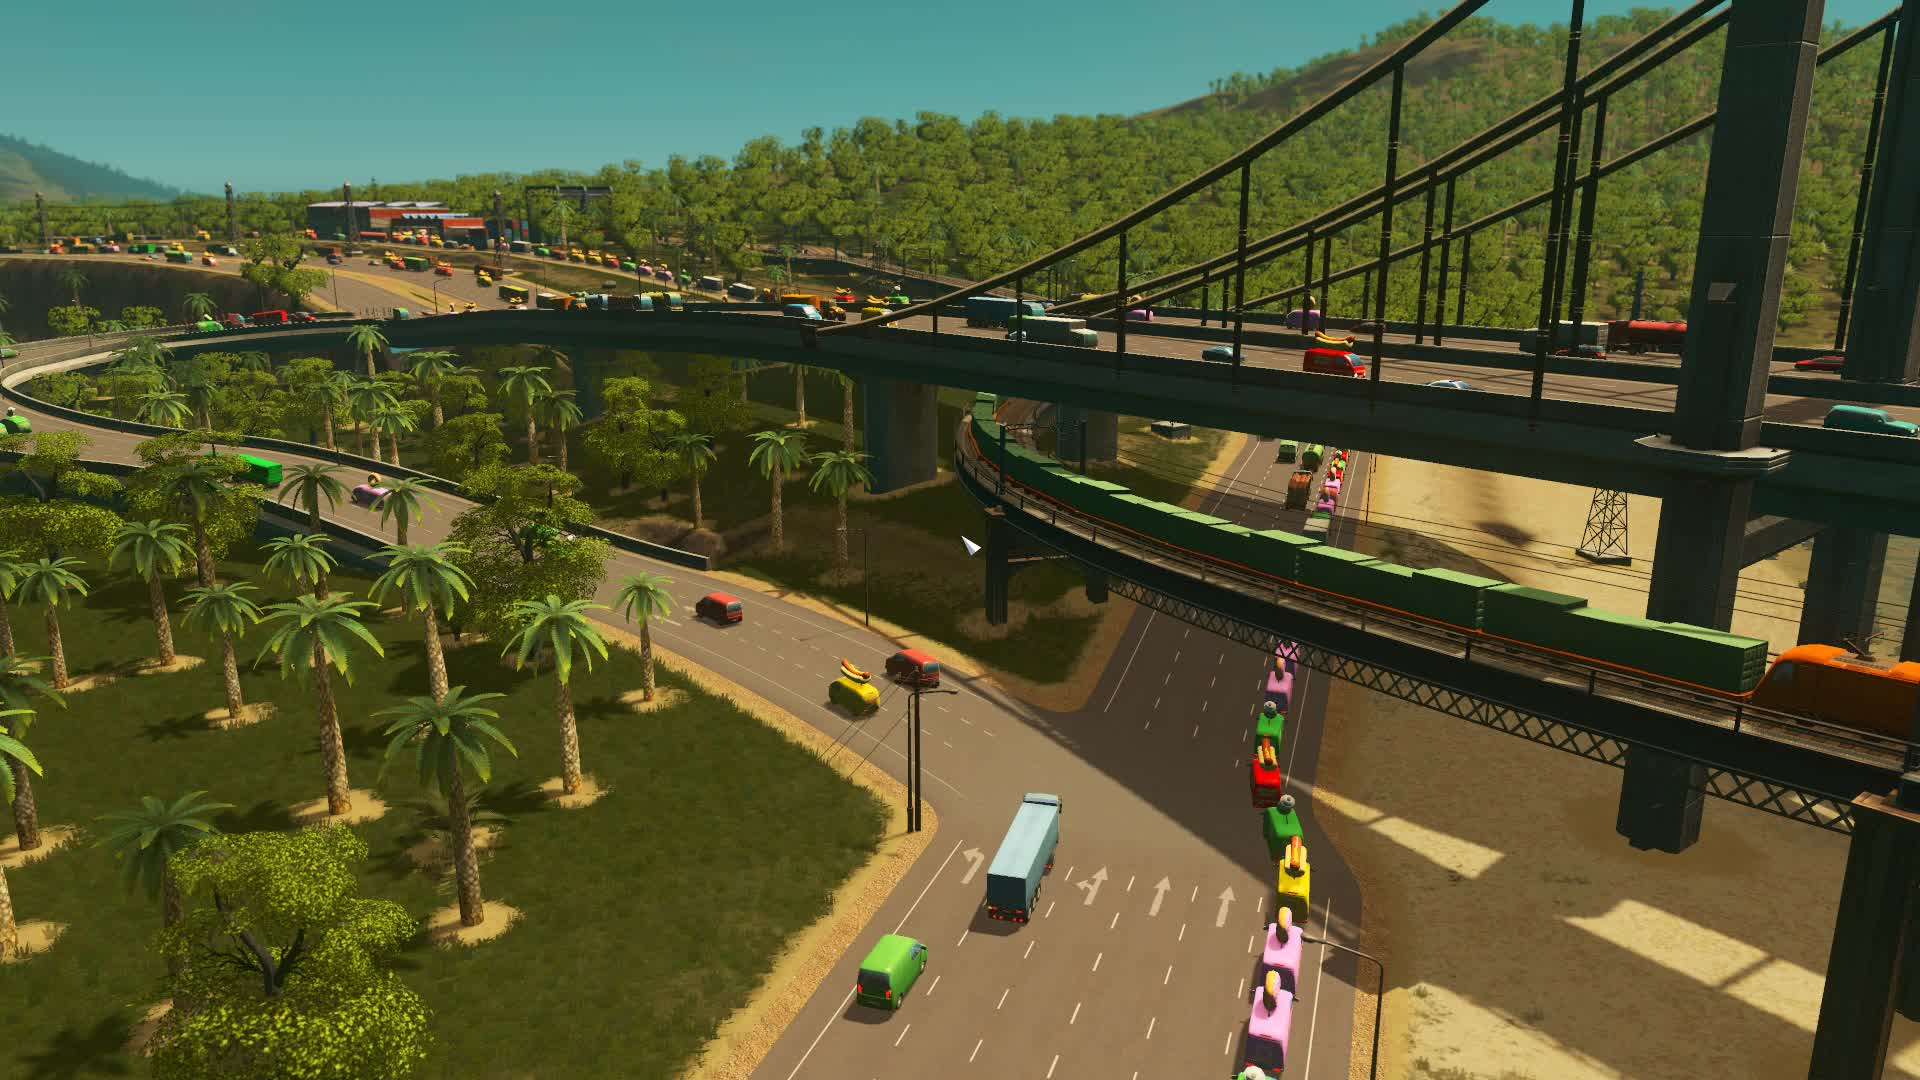 citiesskylines, vlc-record-2018-06-30-21h38m04s-Cities Skylines 2018.06.30 - 21.34.11.02.mp4- GIFs